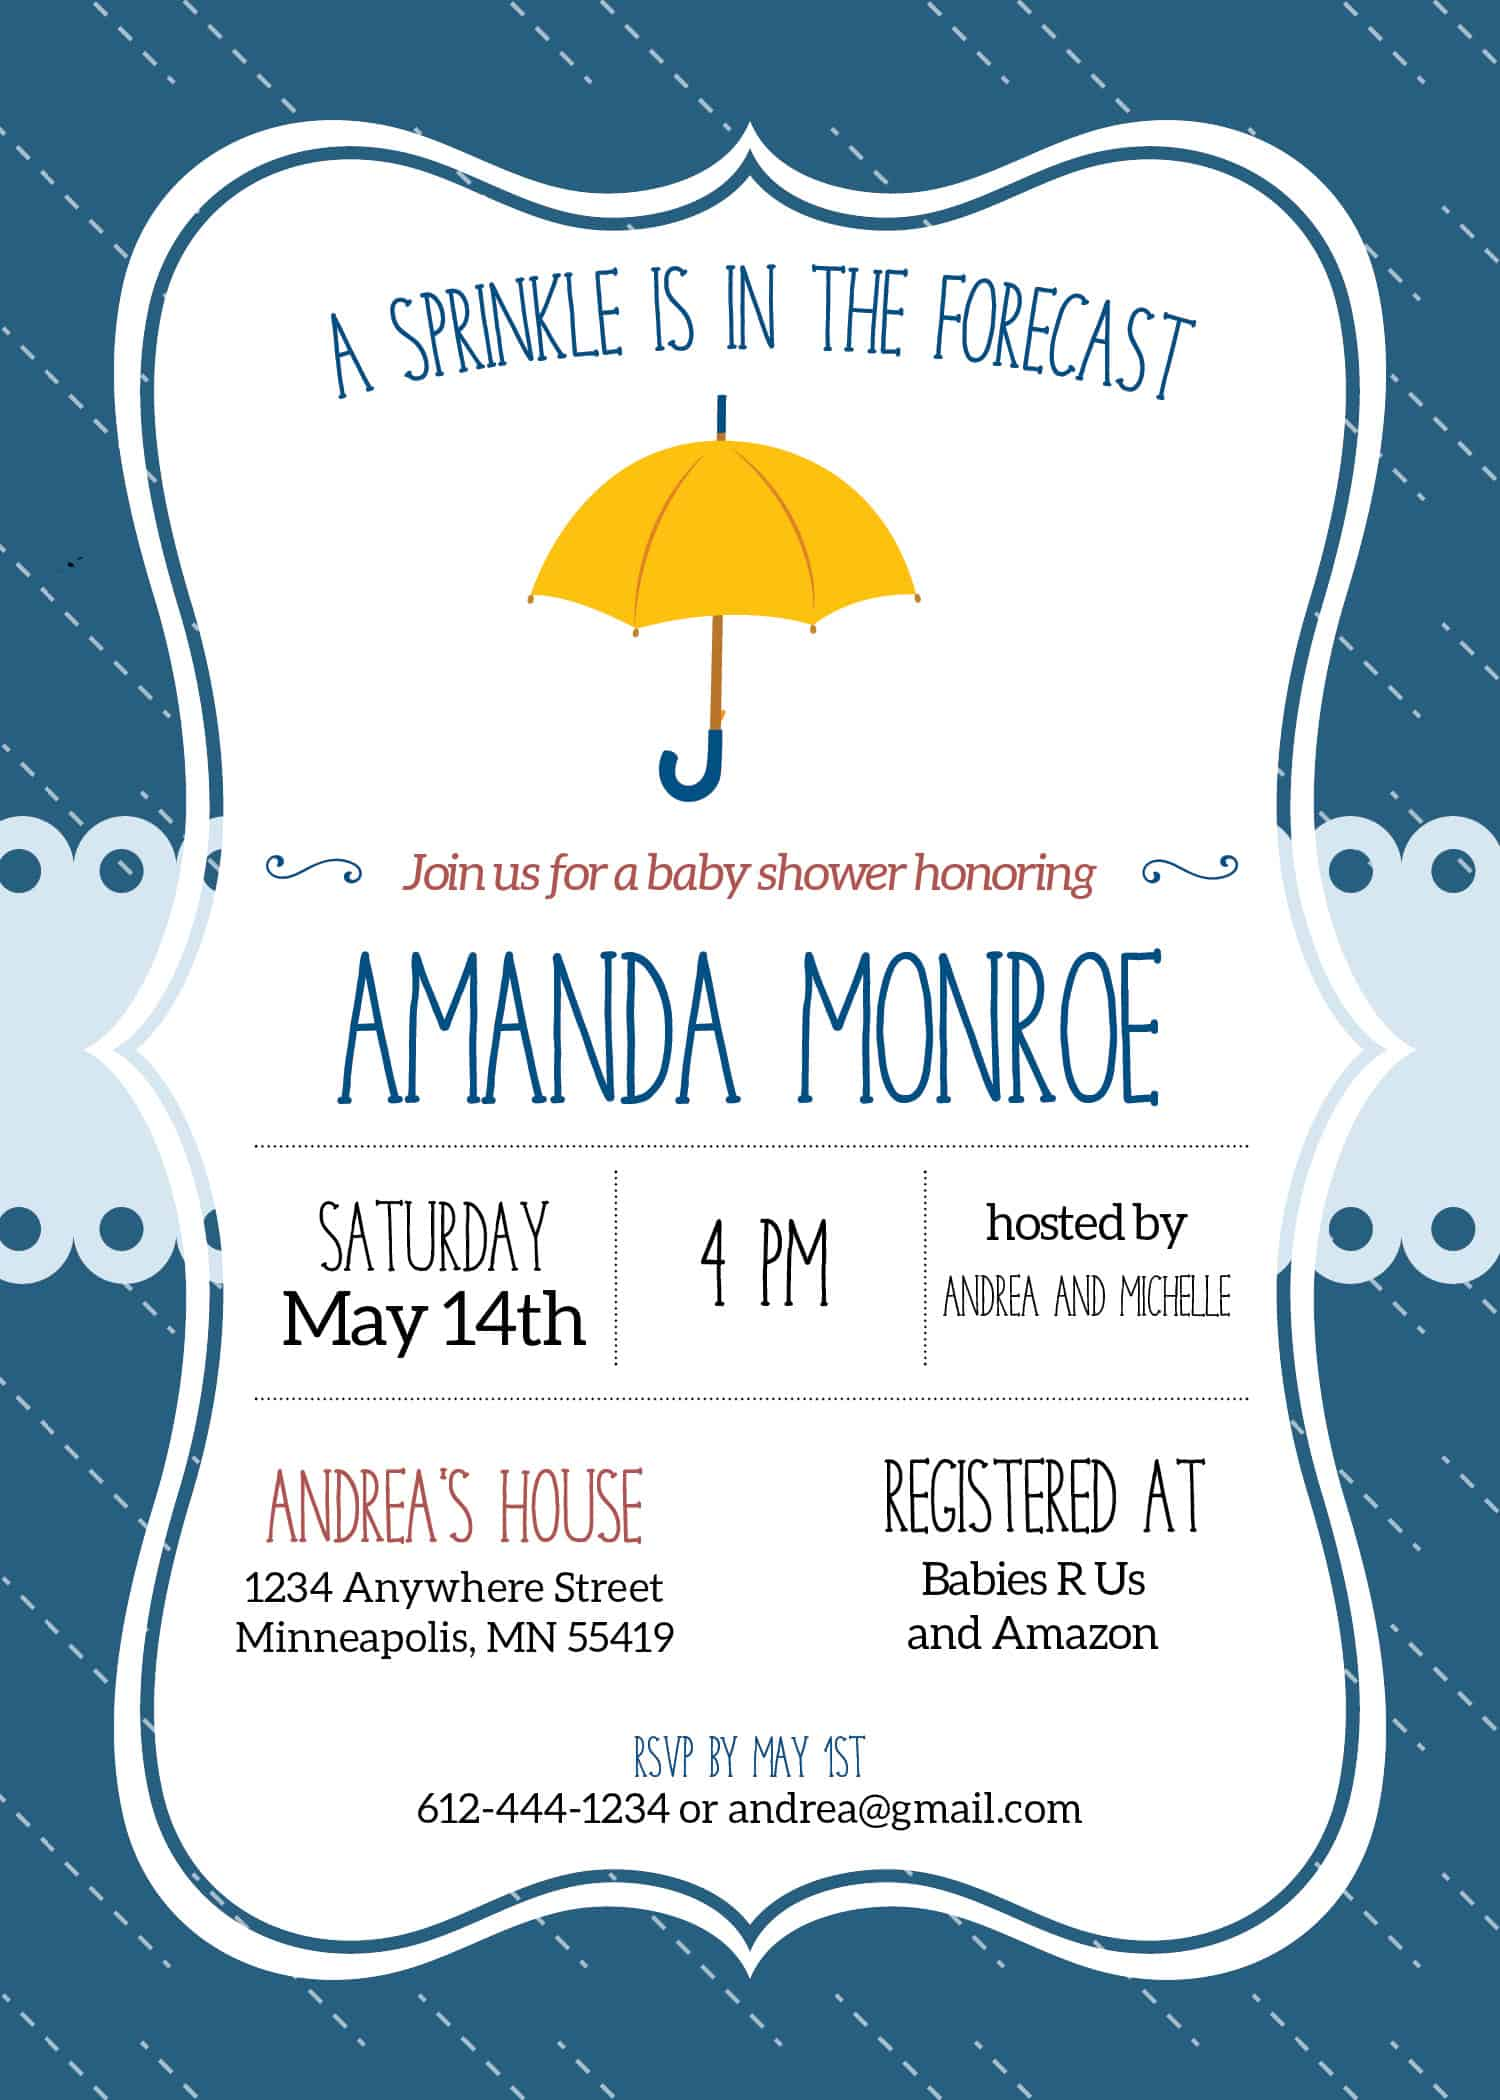 A Sprinkle is in the Forecast Baby Shower Theme - Elva M Design Studio